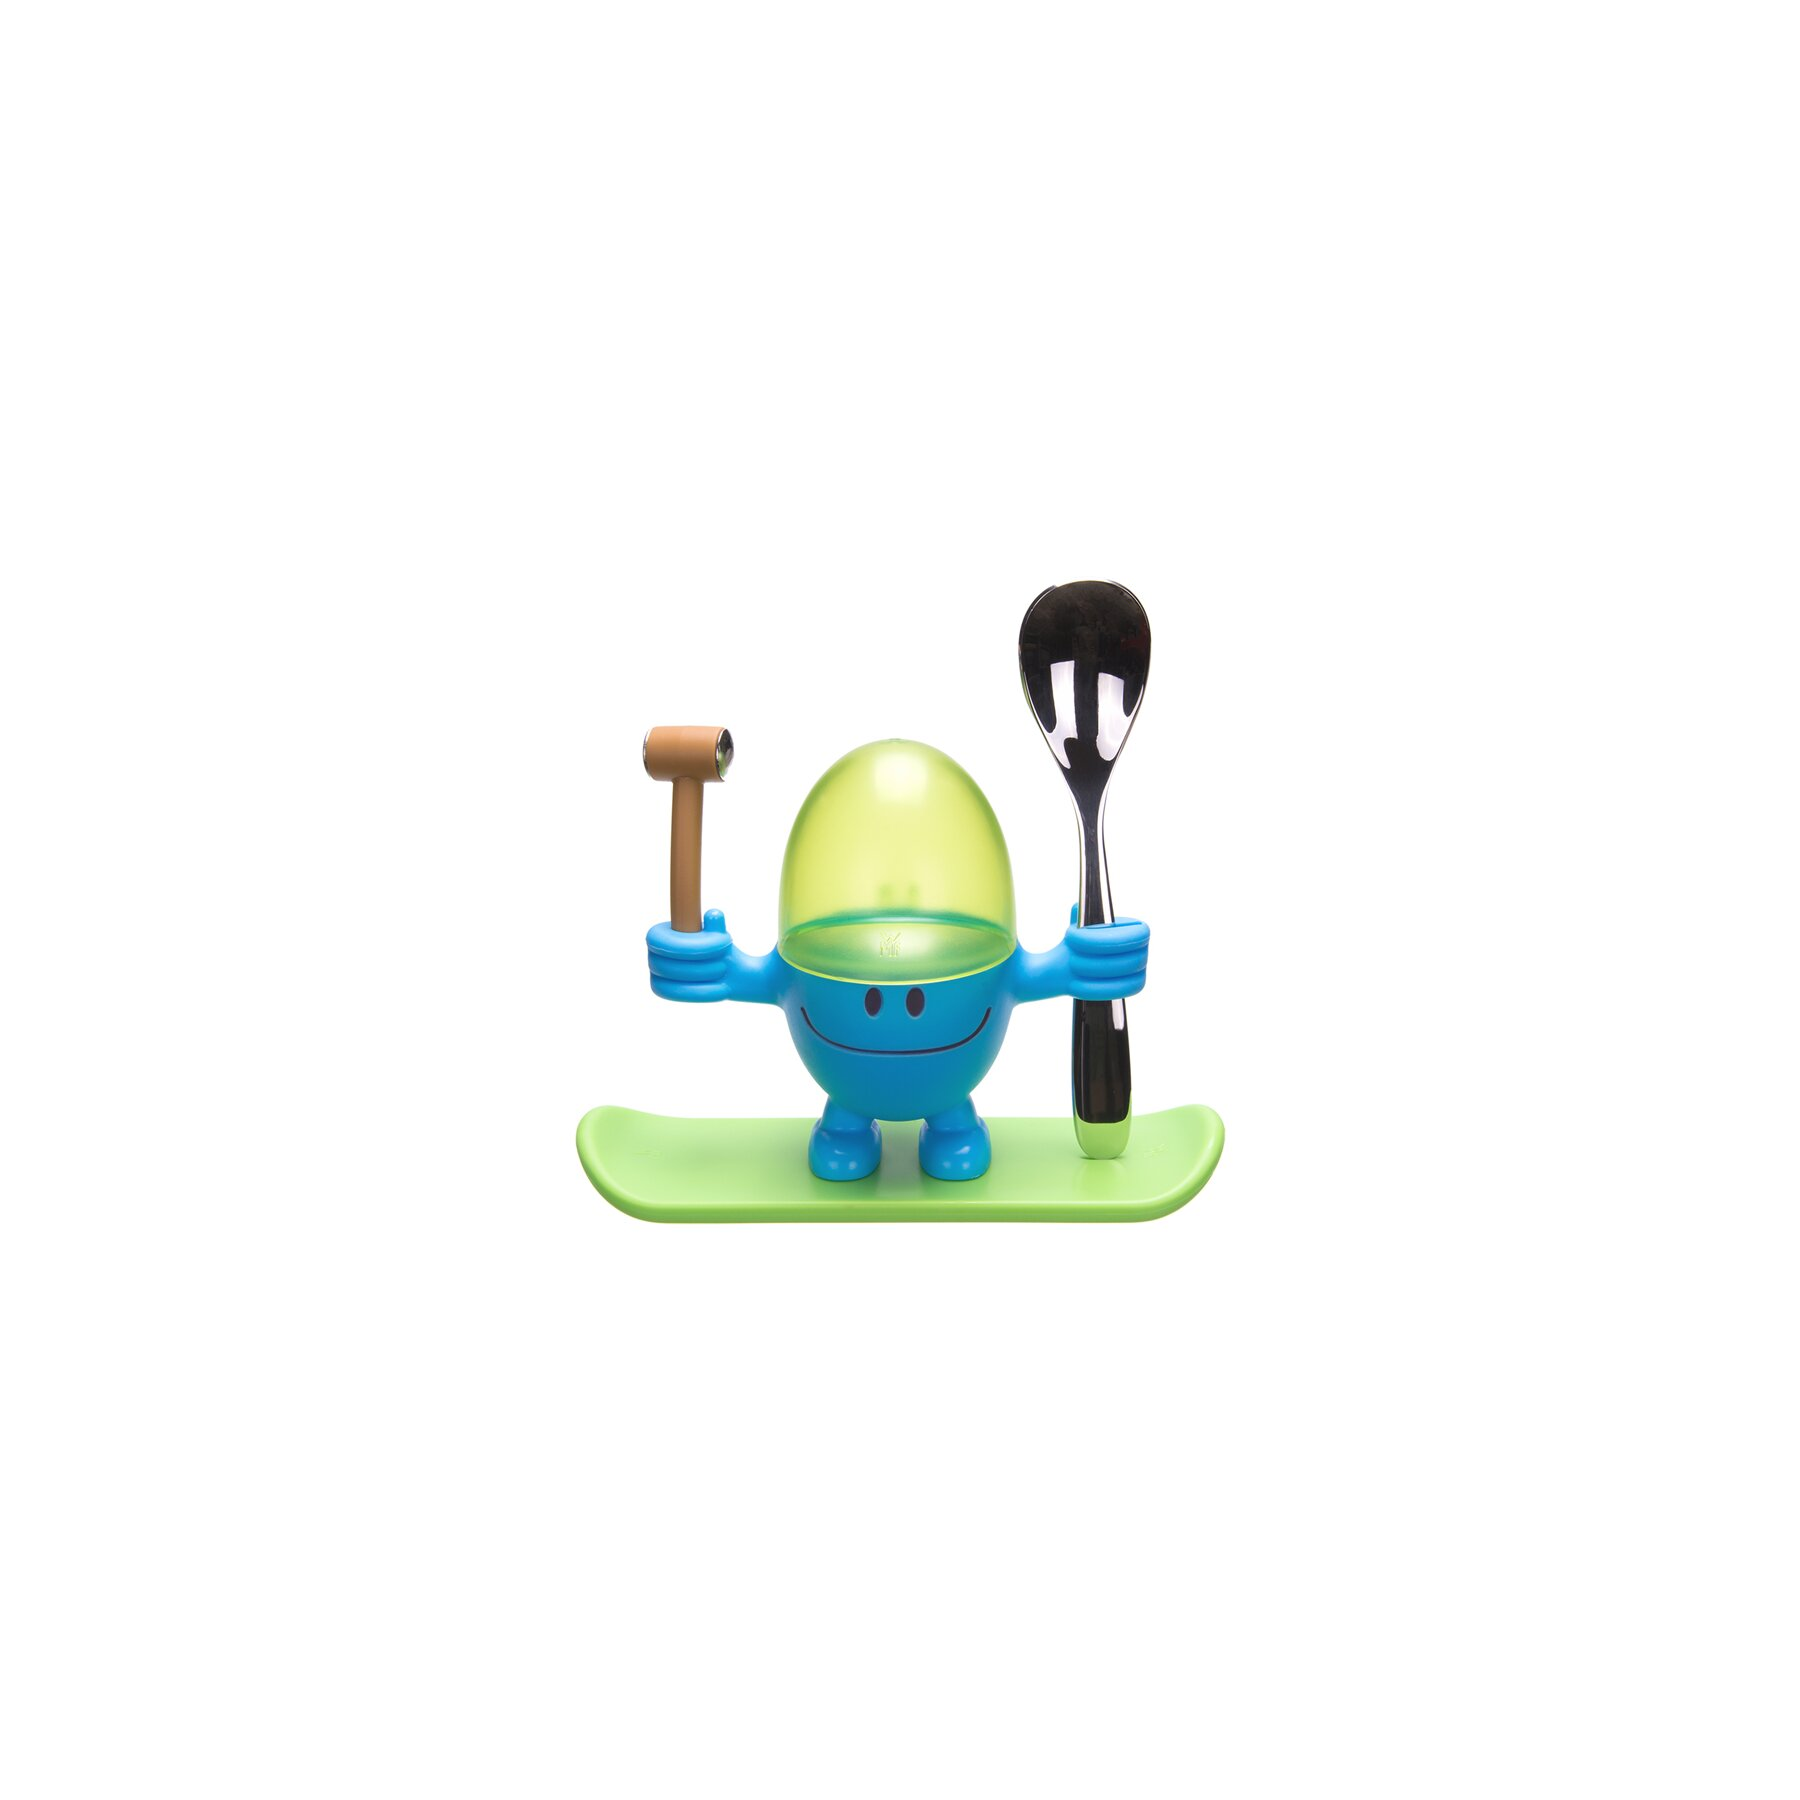 wmf mr egg eierbecher blau l ffel mit wunschname graviert 19 95. Black Bedroom Furniture Sets. Home Design Ideas